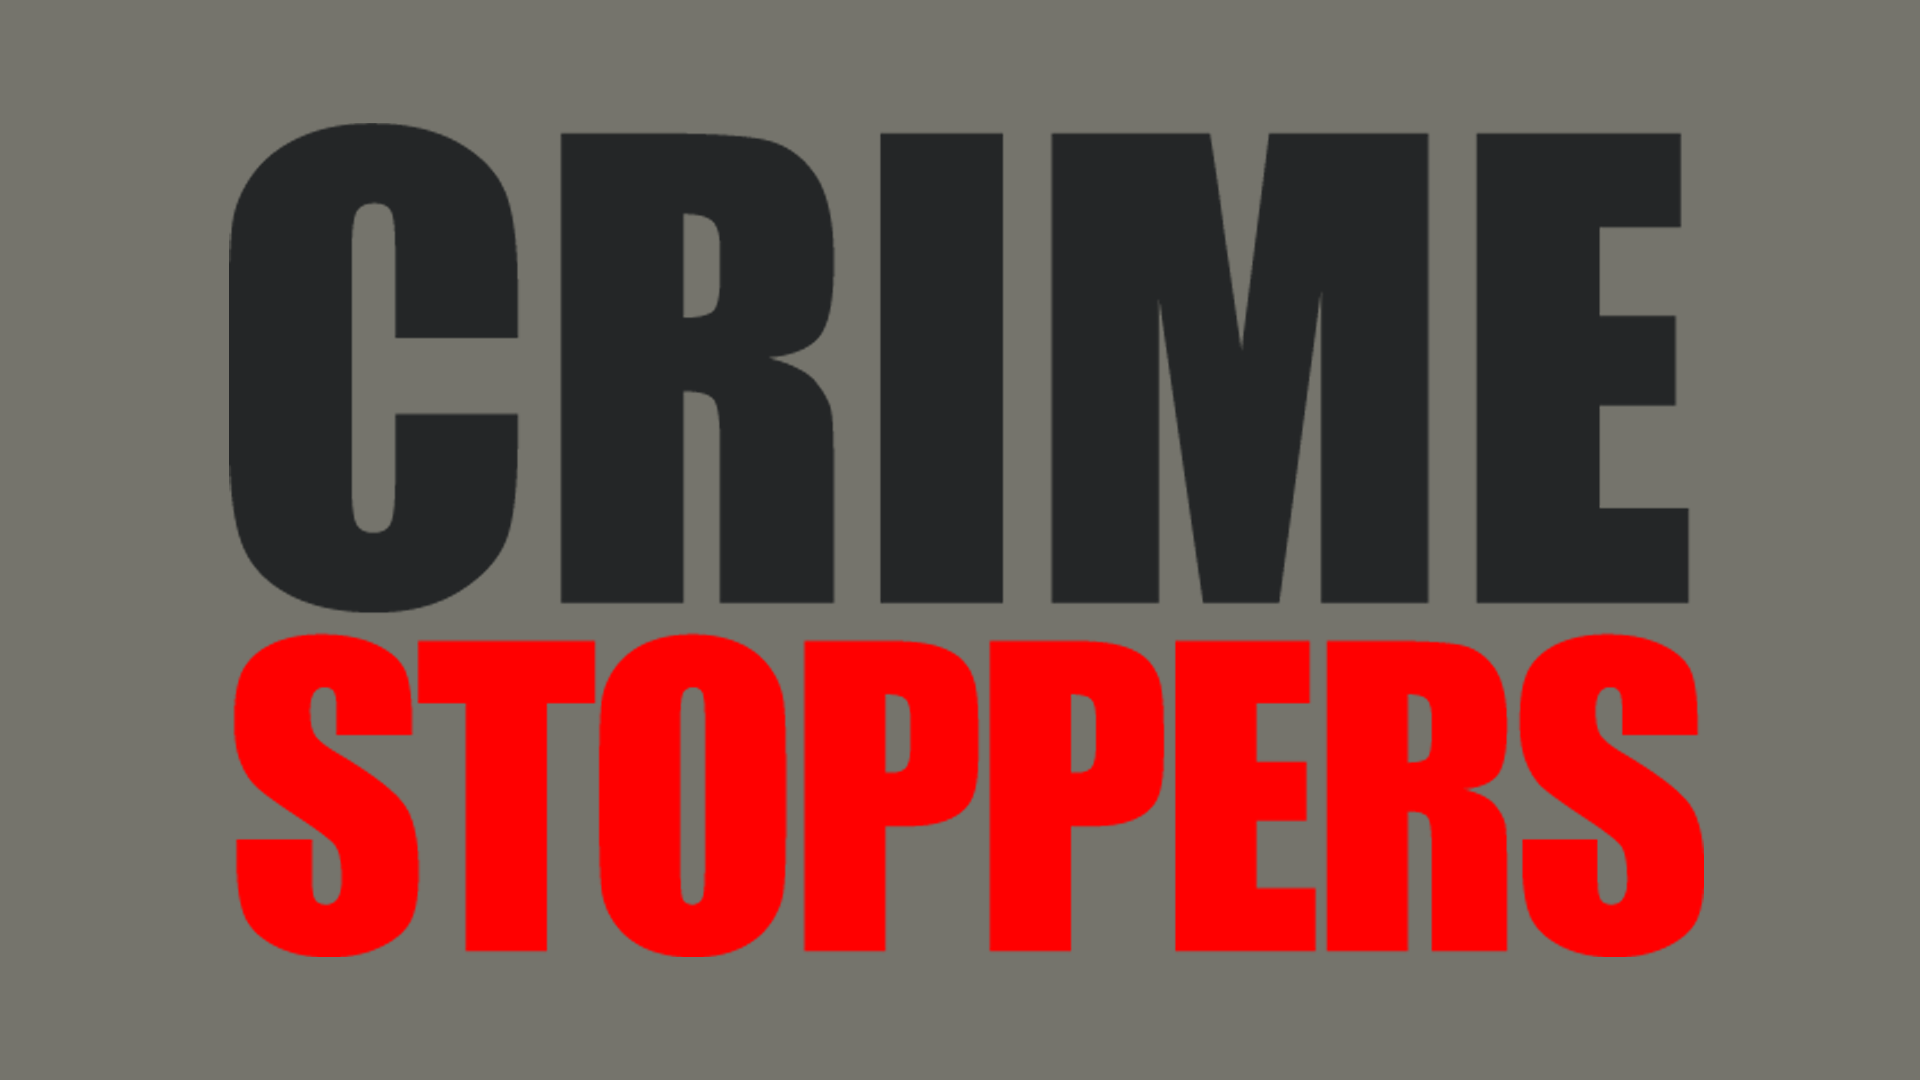 CrimeStoppers for January 5, 2015